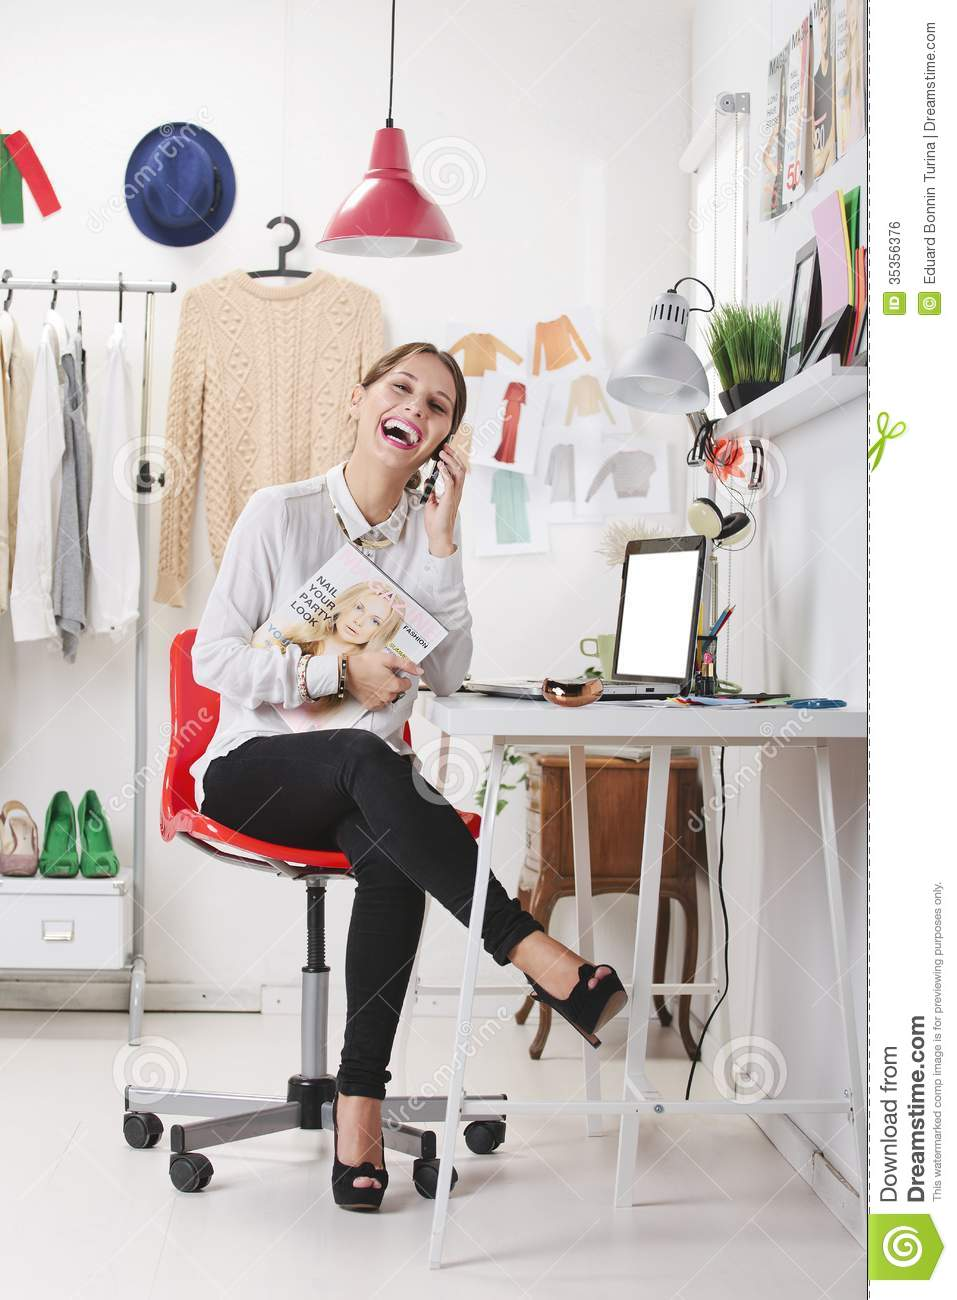 Fashion Magazine Editor In Her Office Talking With Smart Phone Stock Photo Image 35356376